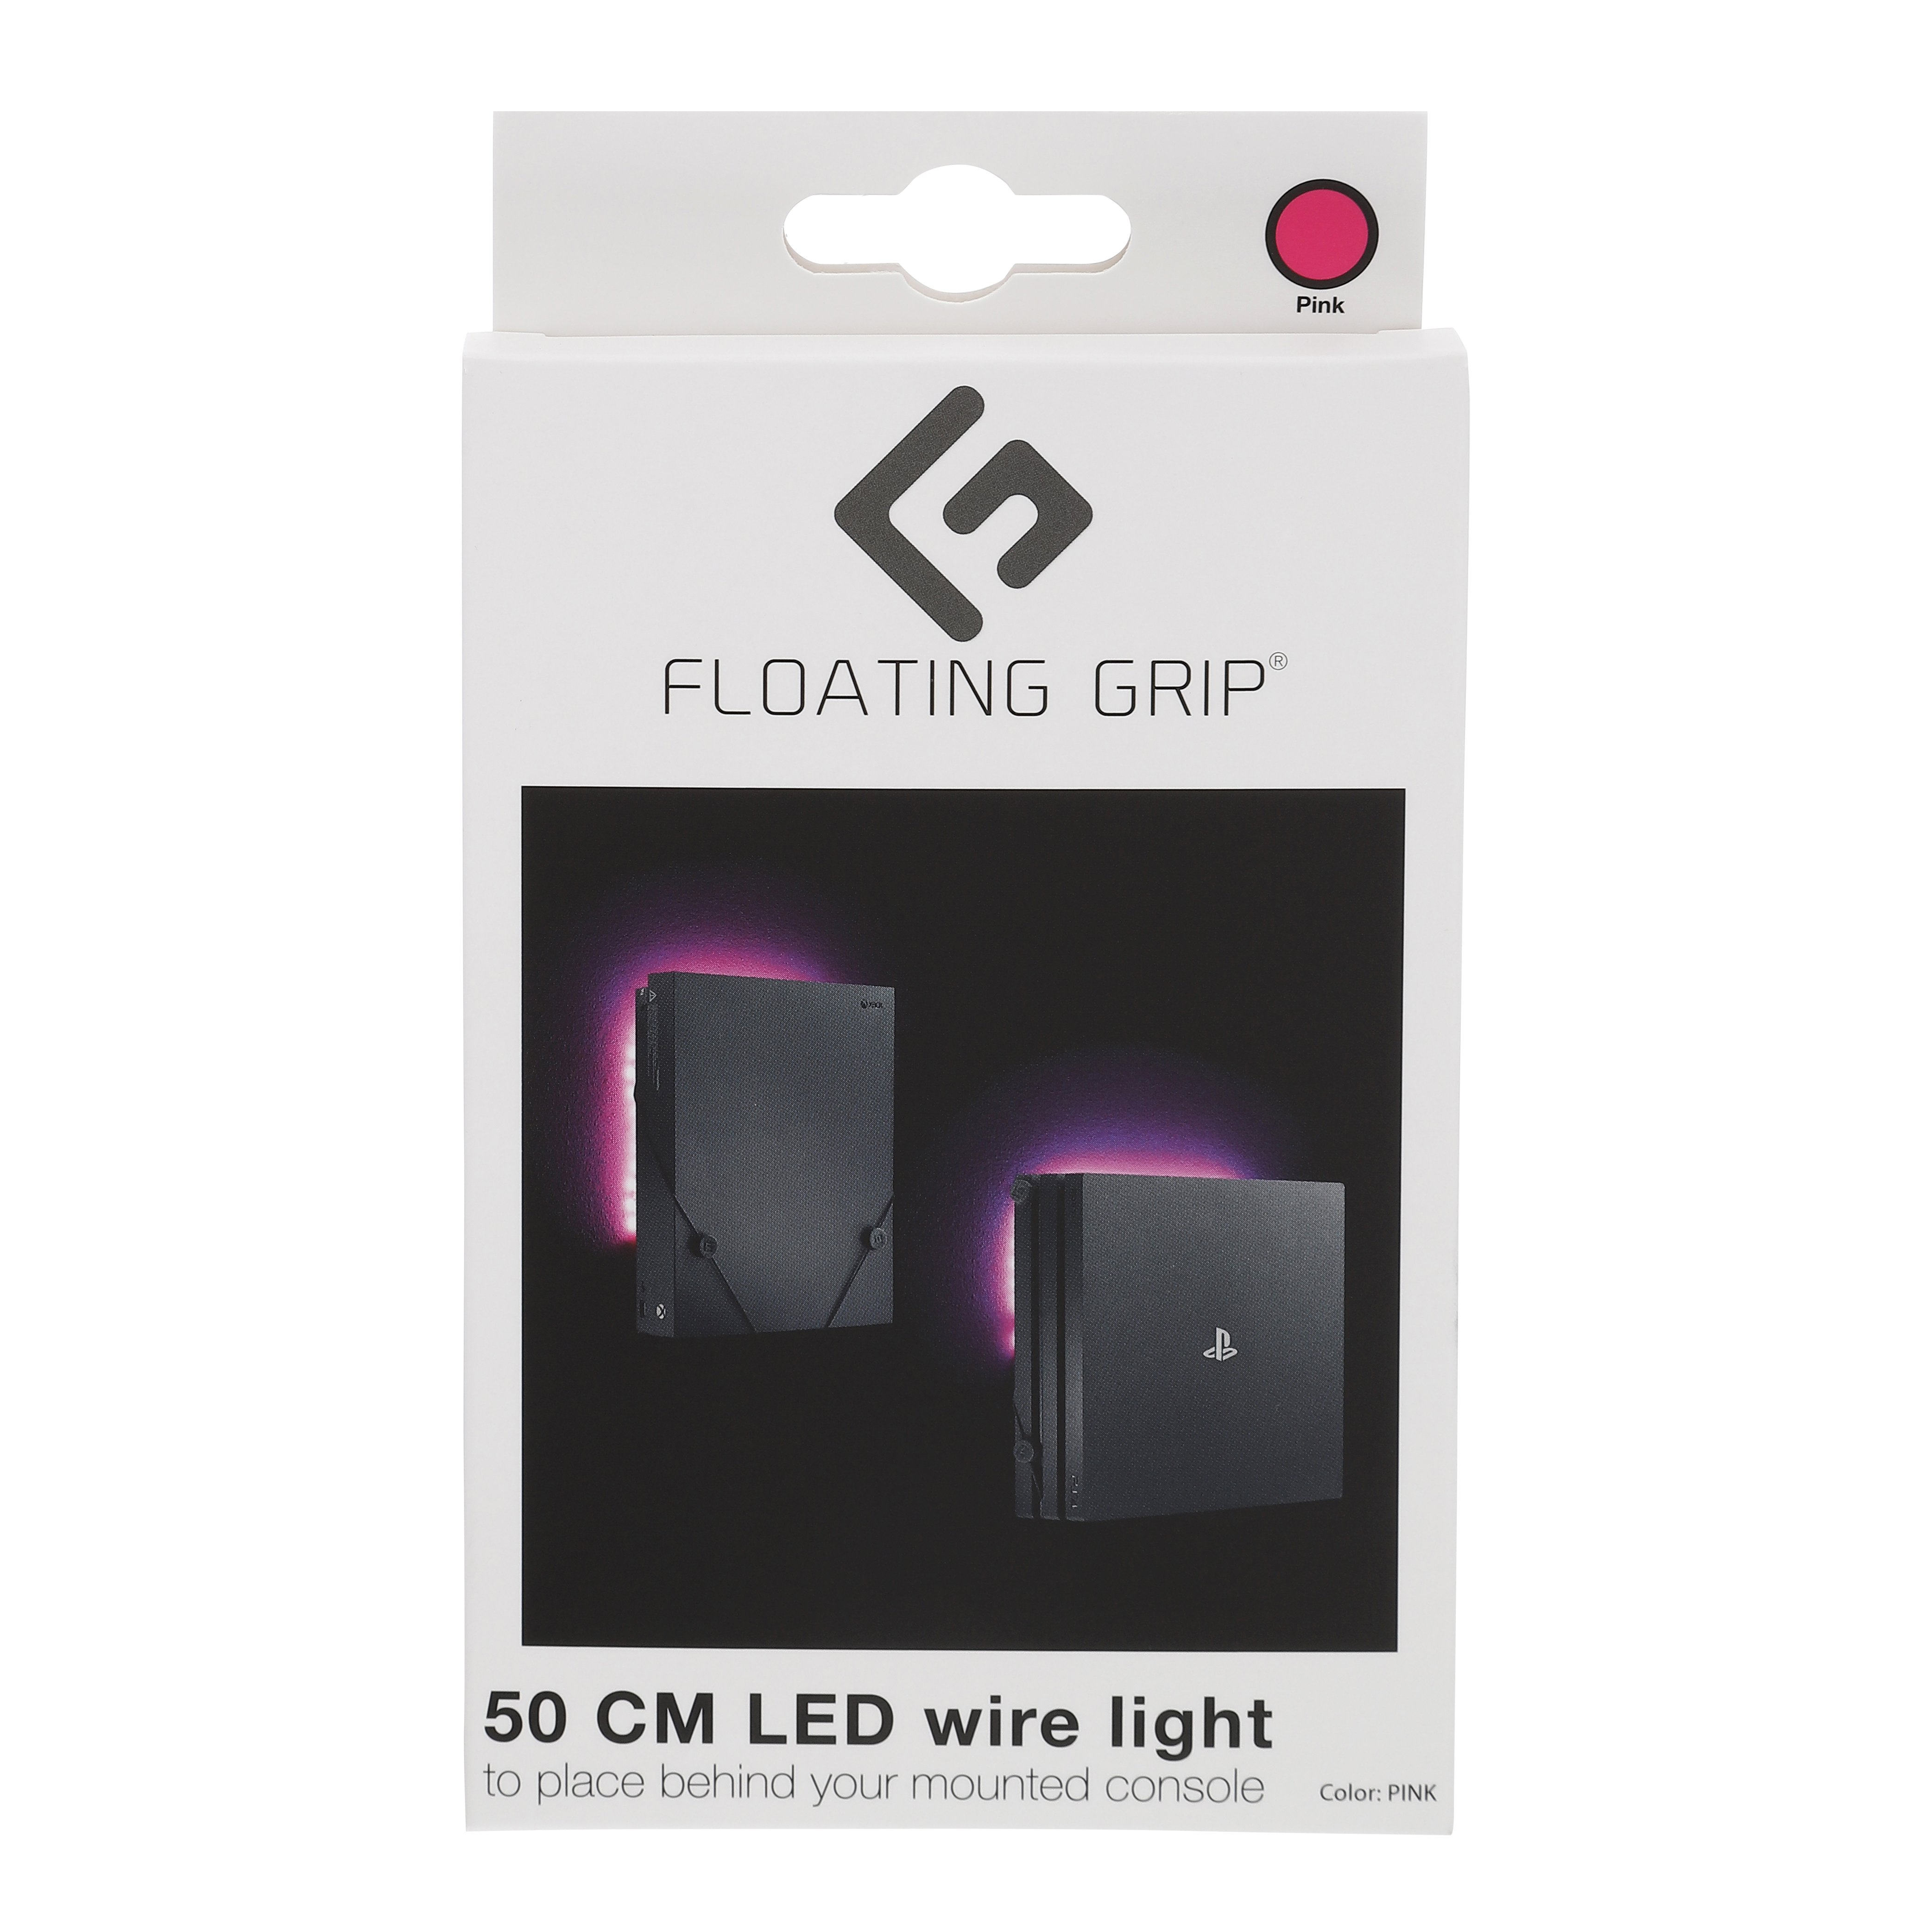 Pink LED wire light - Add on to your FLOATING GRIP®-mount